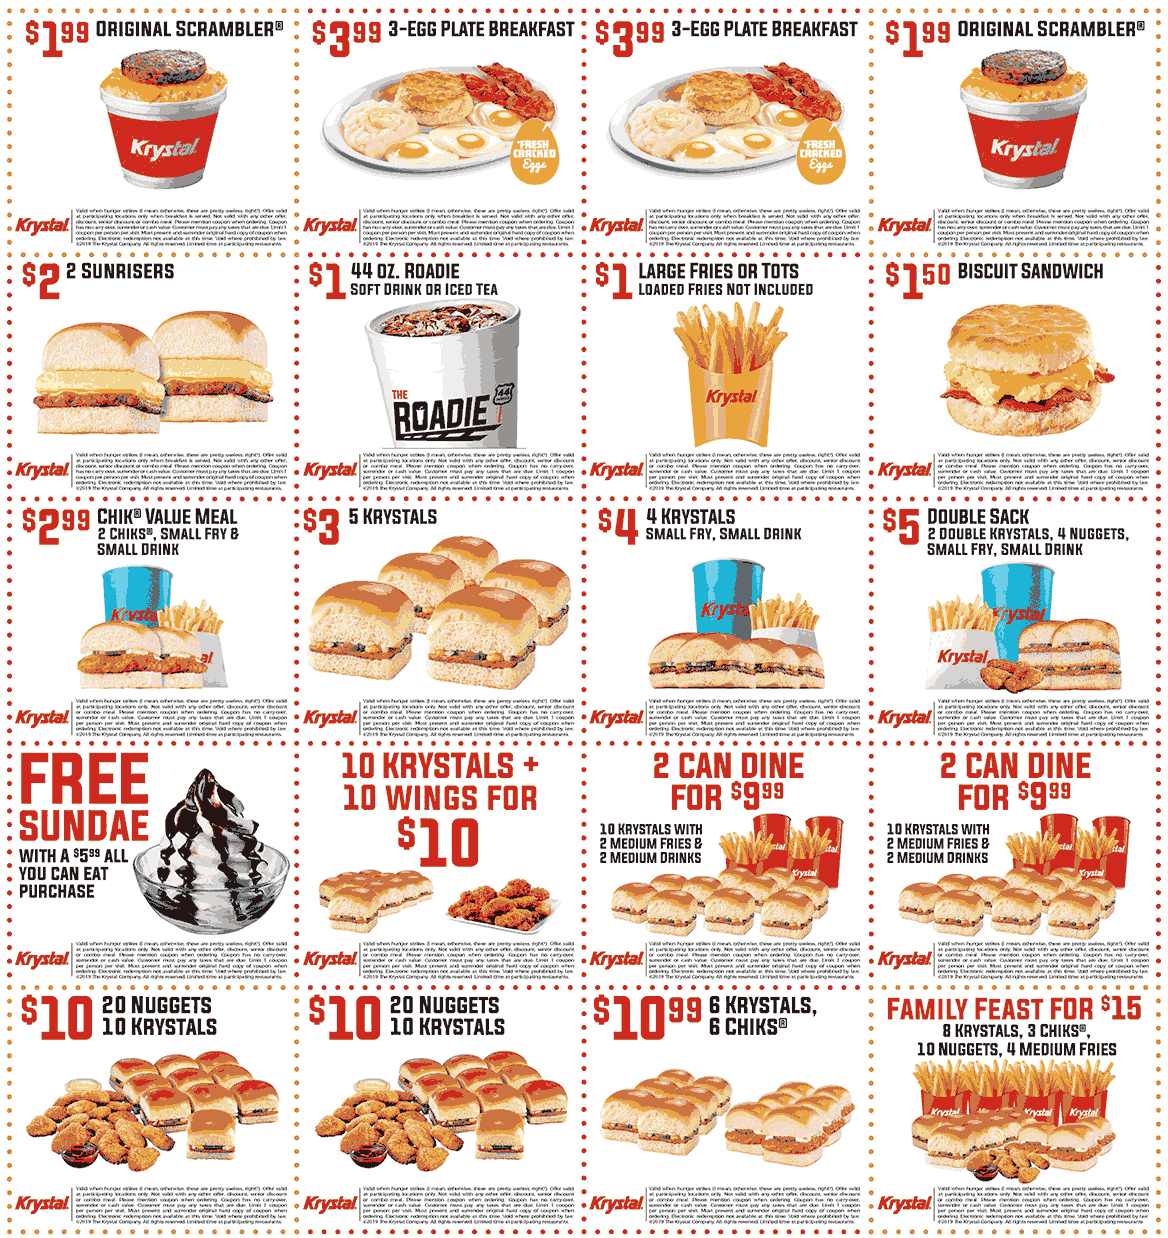 Krystal Coupon January 2020 5 burgers for $3 & more at Krystal restaurants